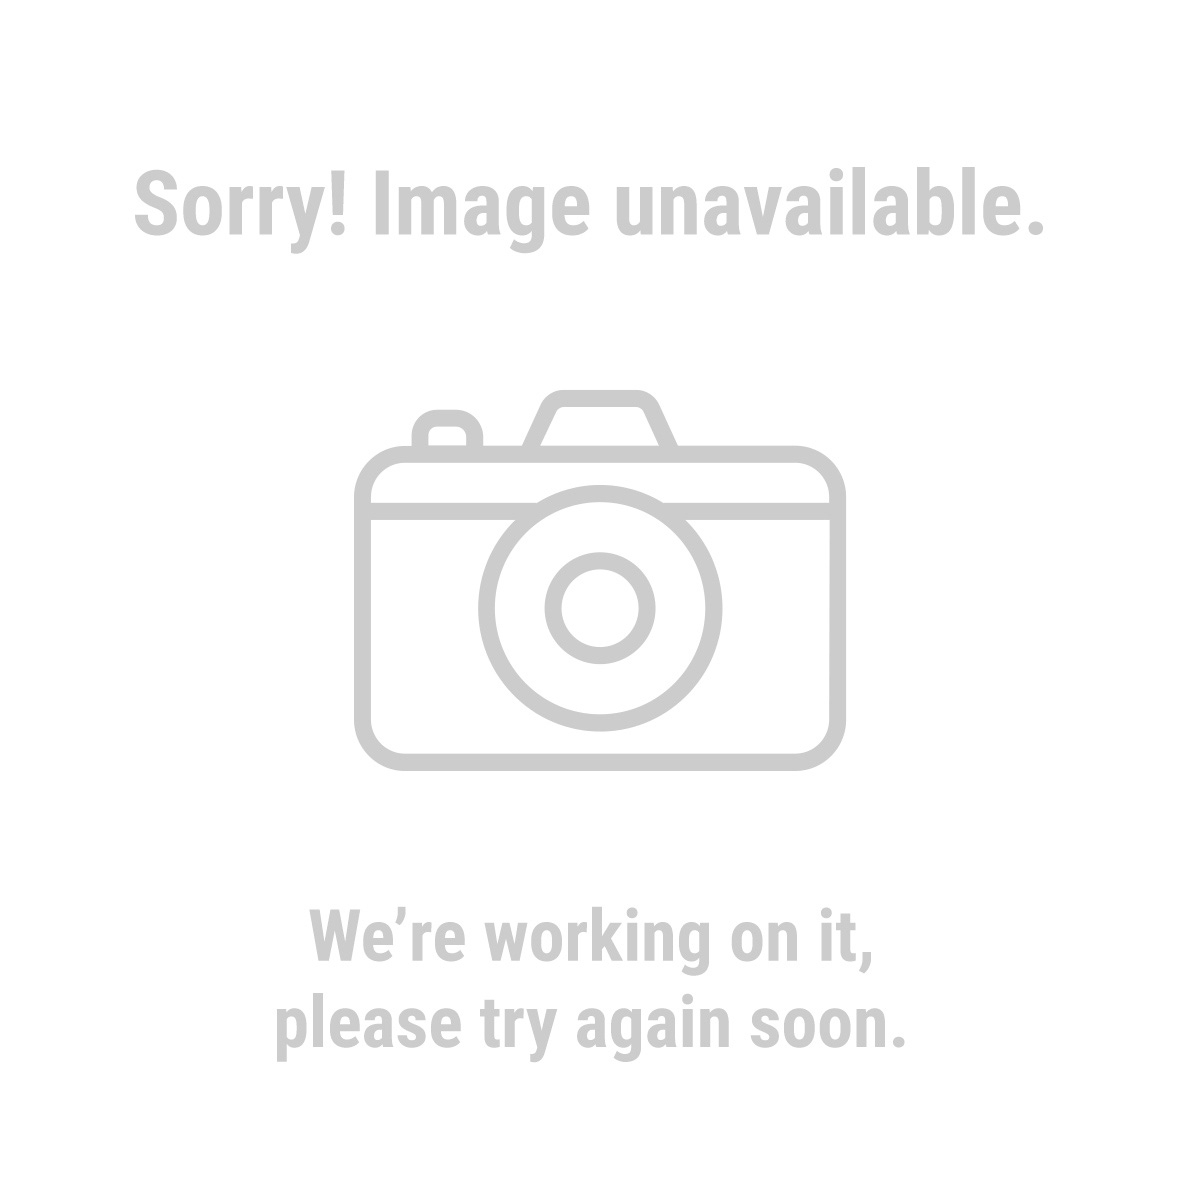 U.S. General Pro 69395 56 in., 11 Drawer Glossy Red Industrial Roller Cabinet